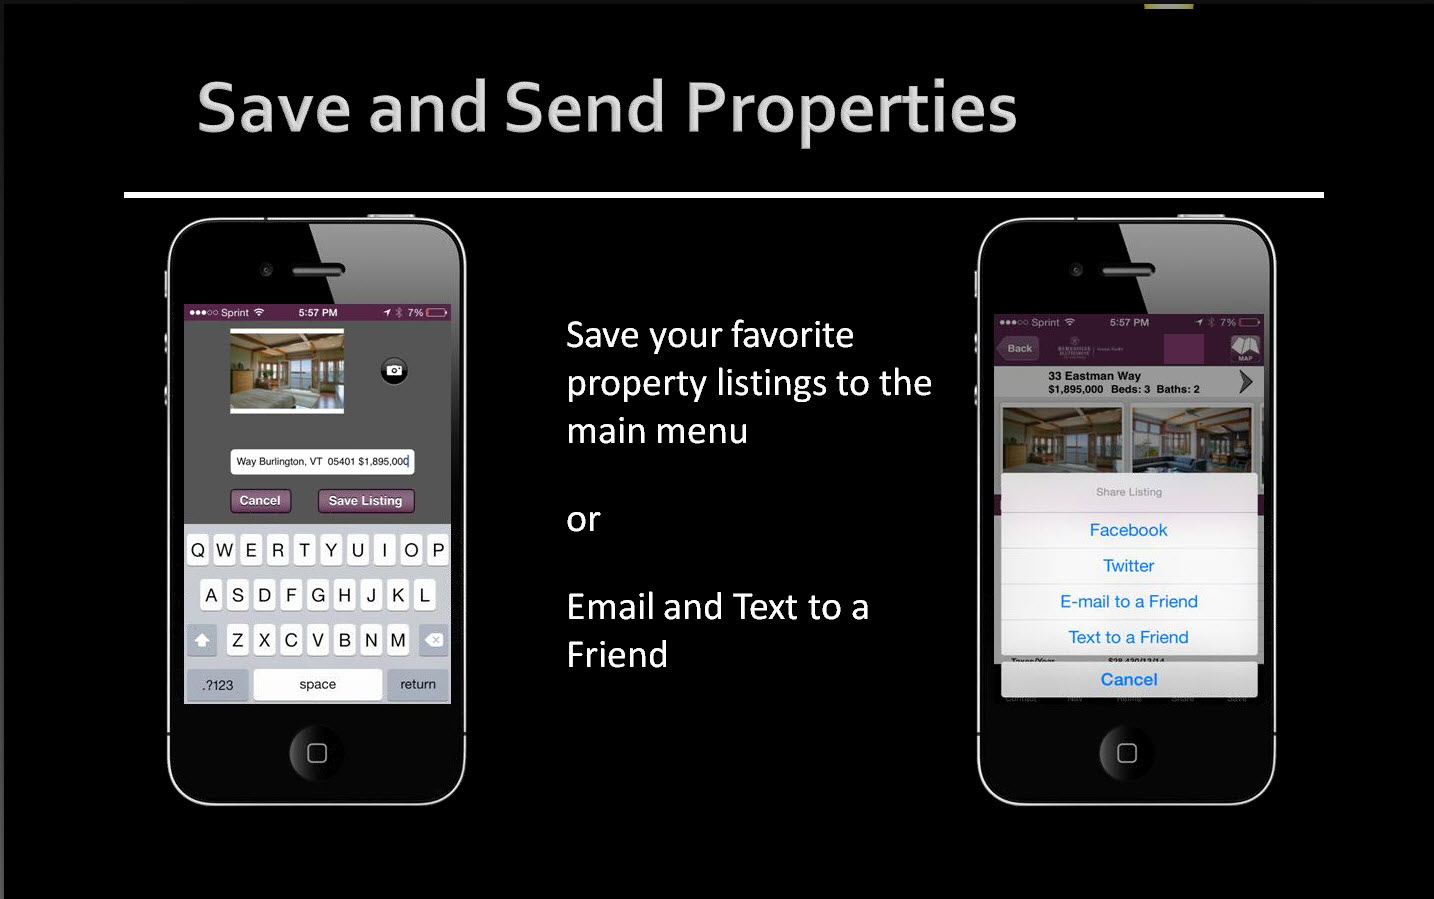 Save and Send listings you find